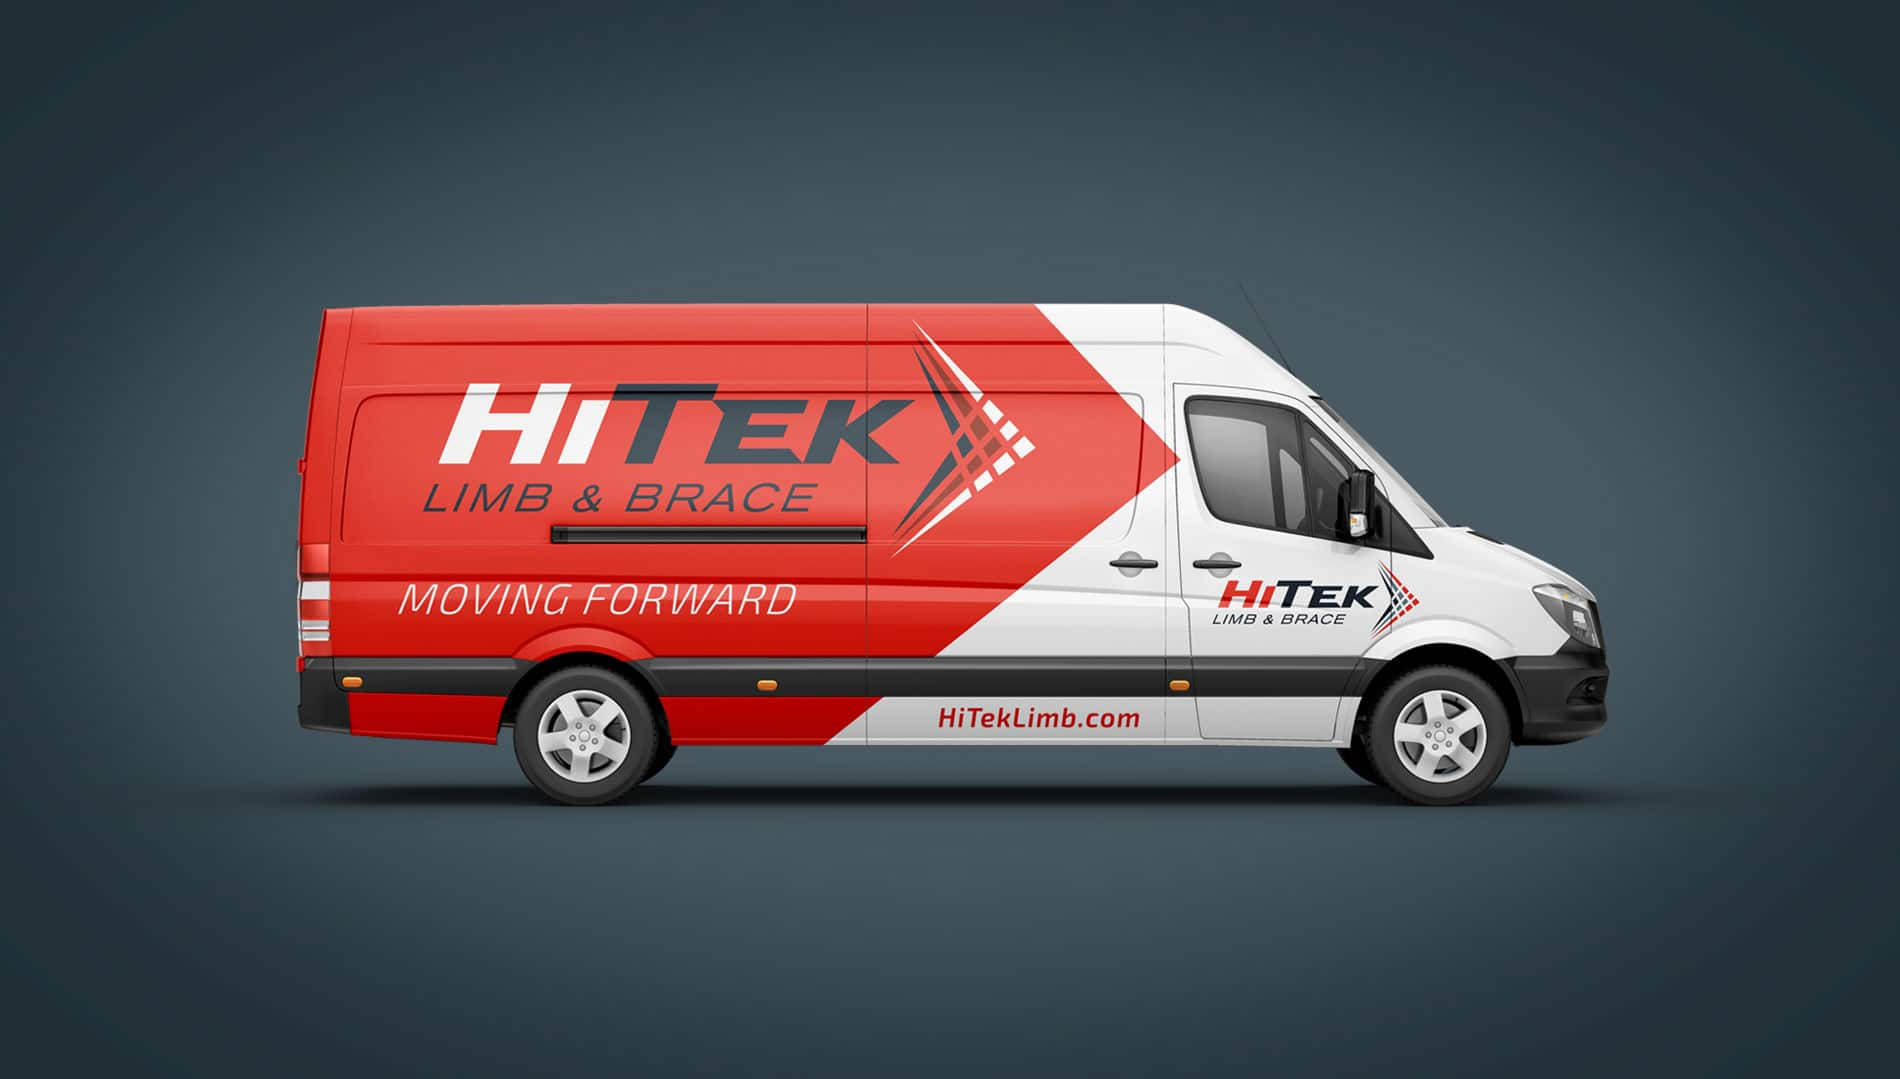 HiTek vehicle wrap design